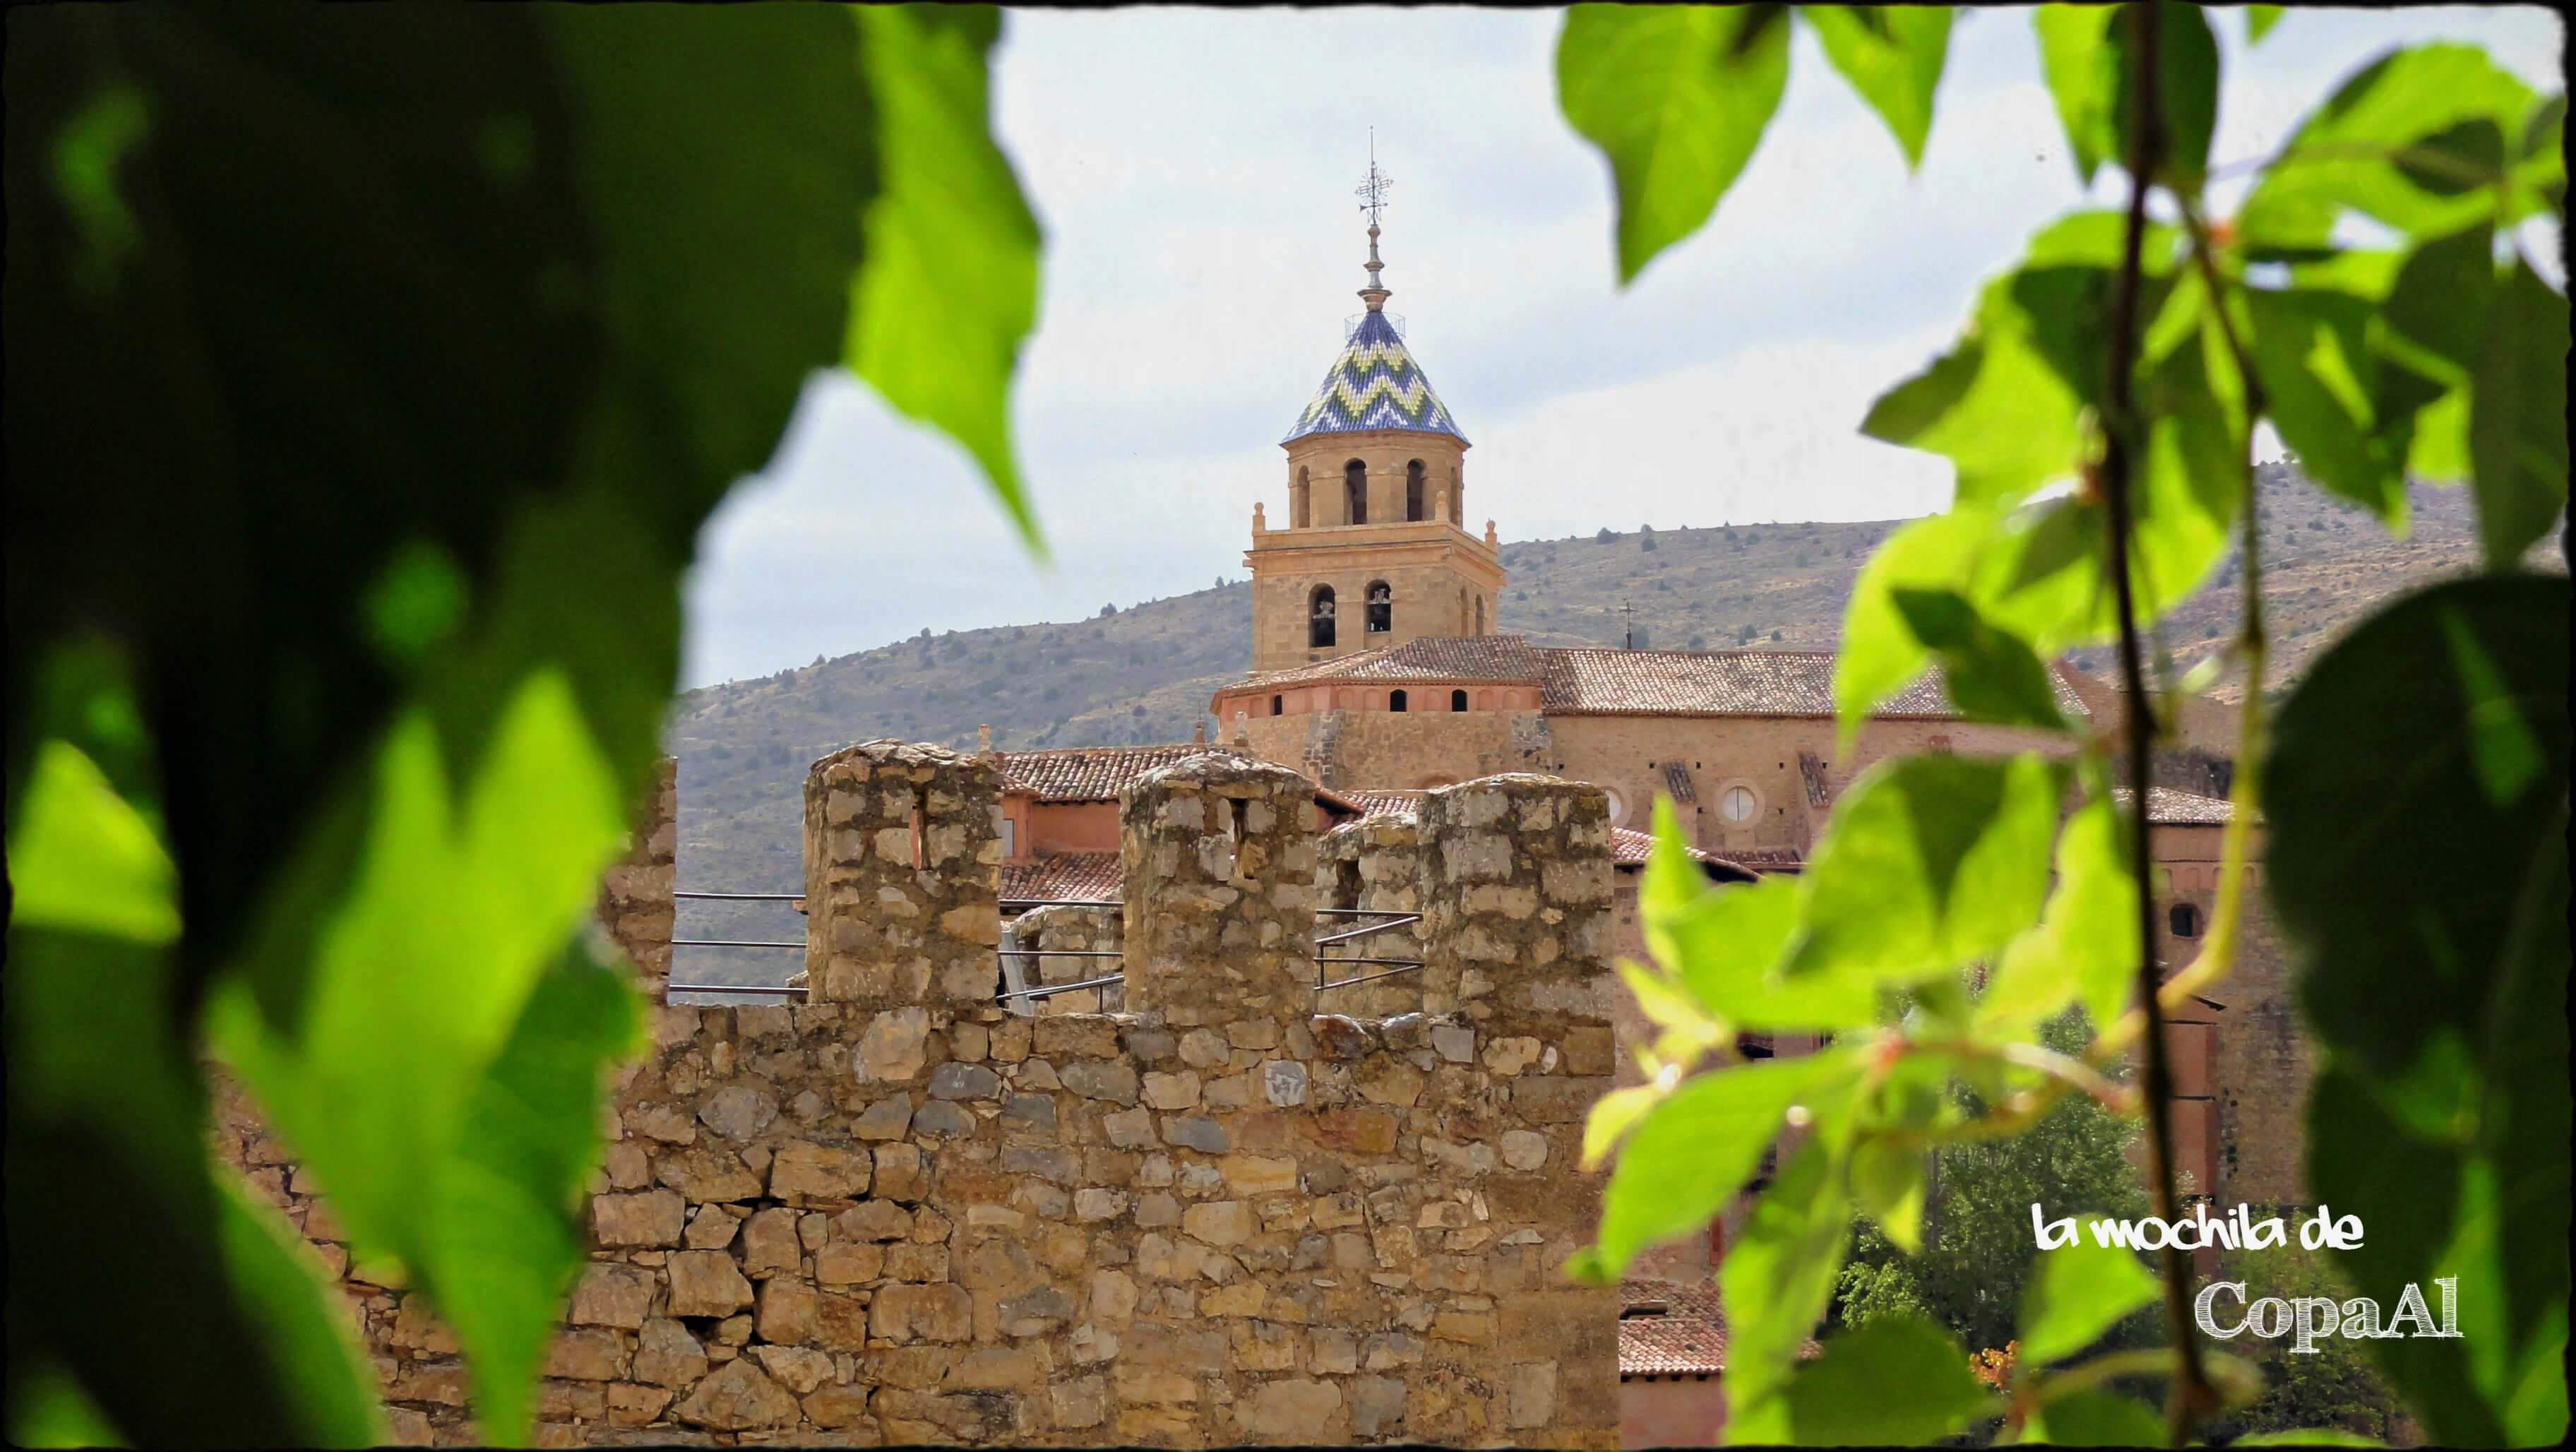 CopaAl-Albarracín-04